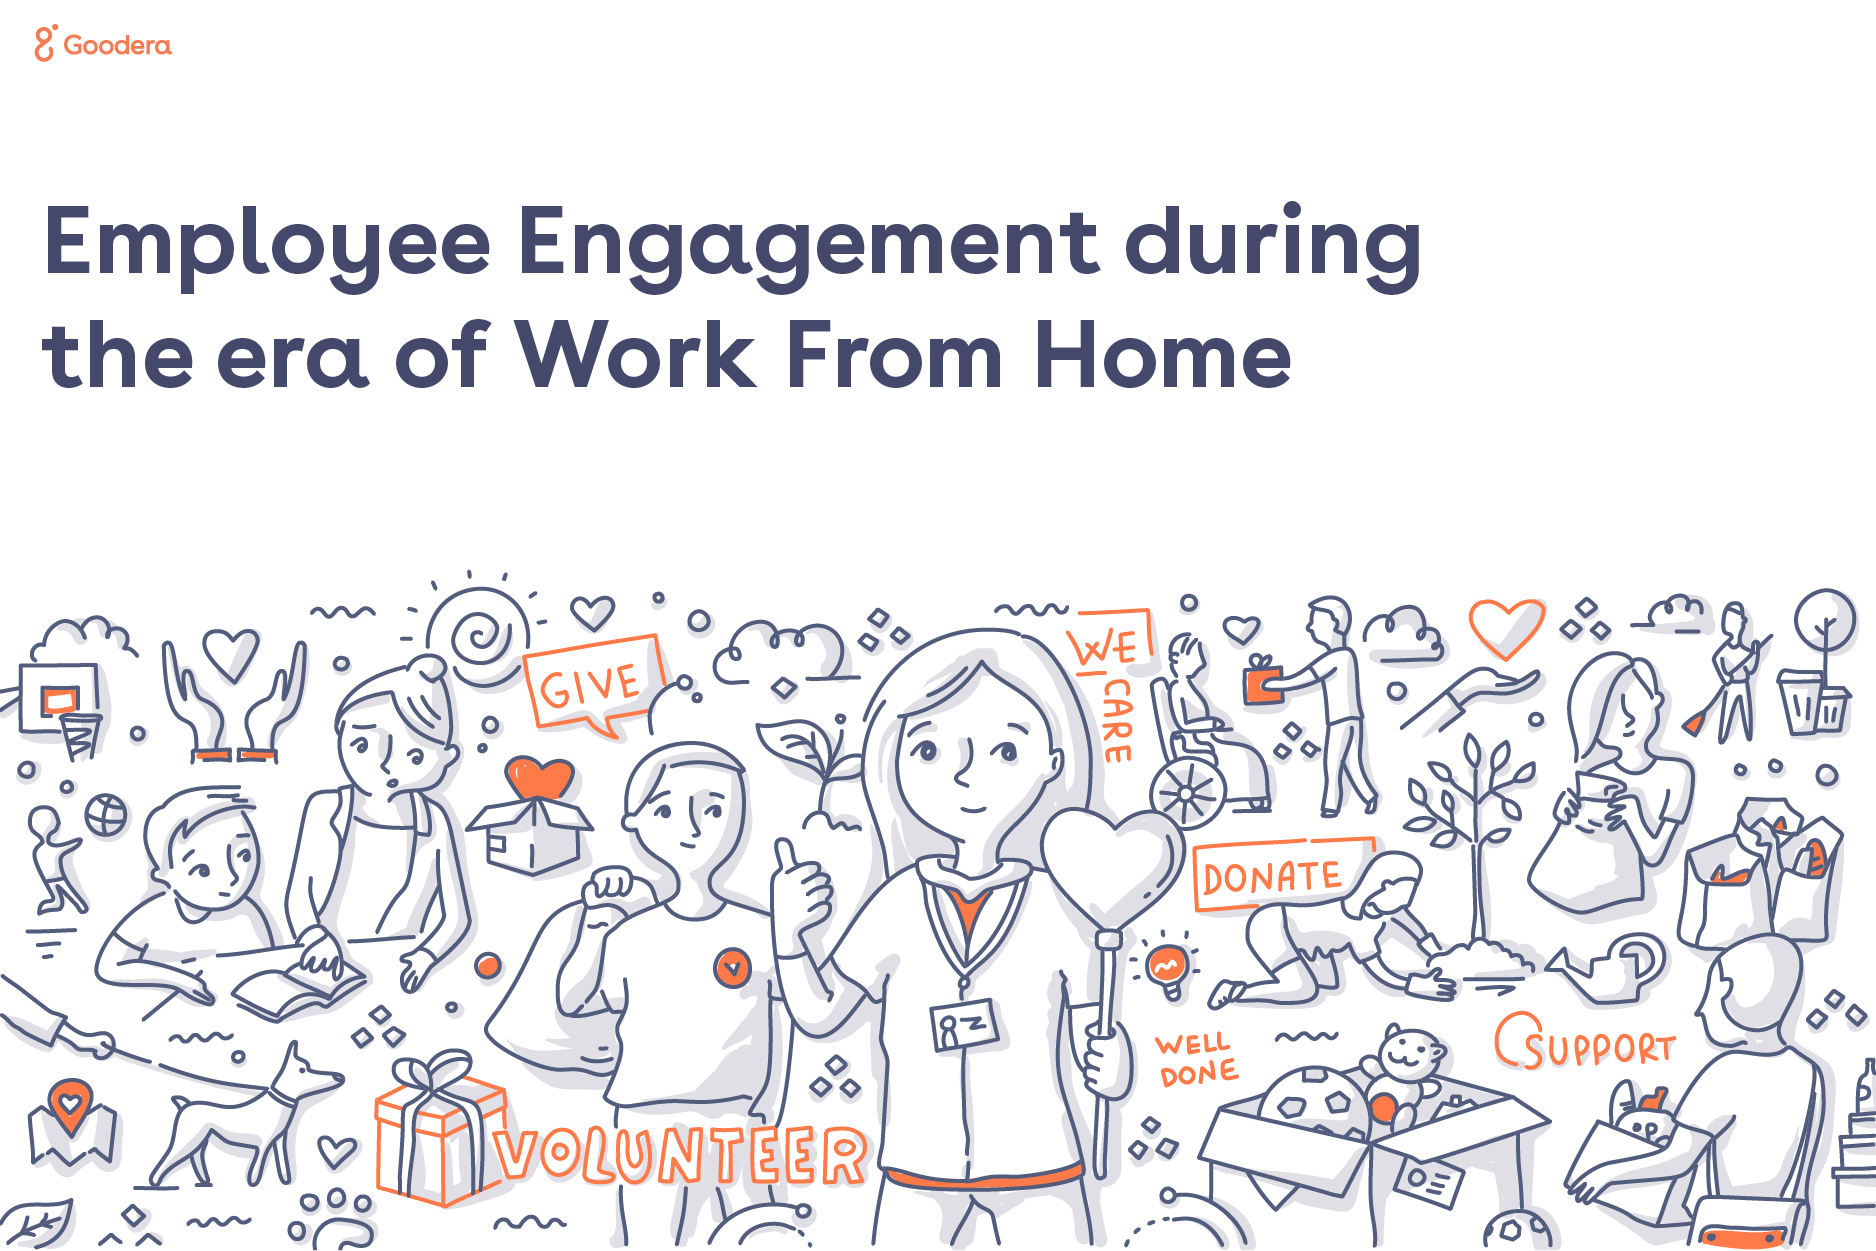 Employee Engagement during the era of Work From Home